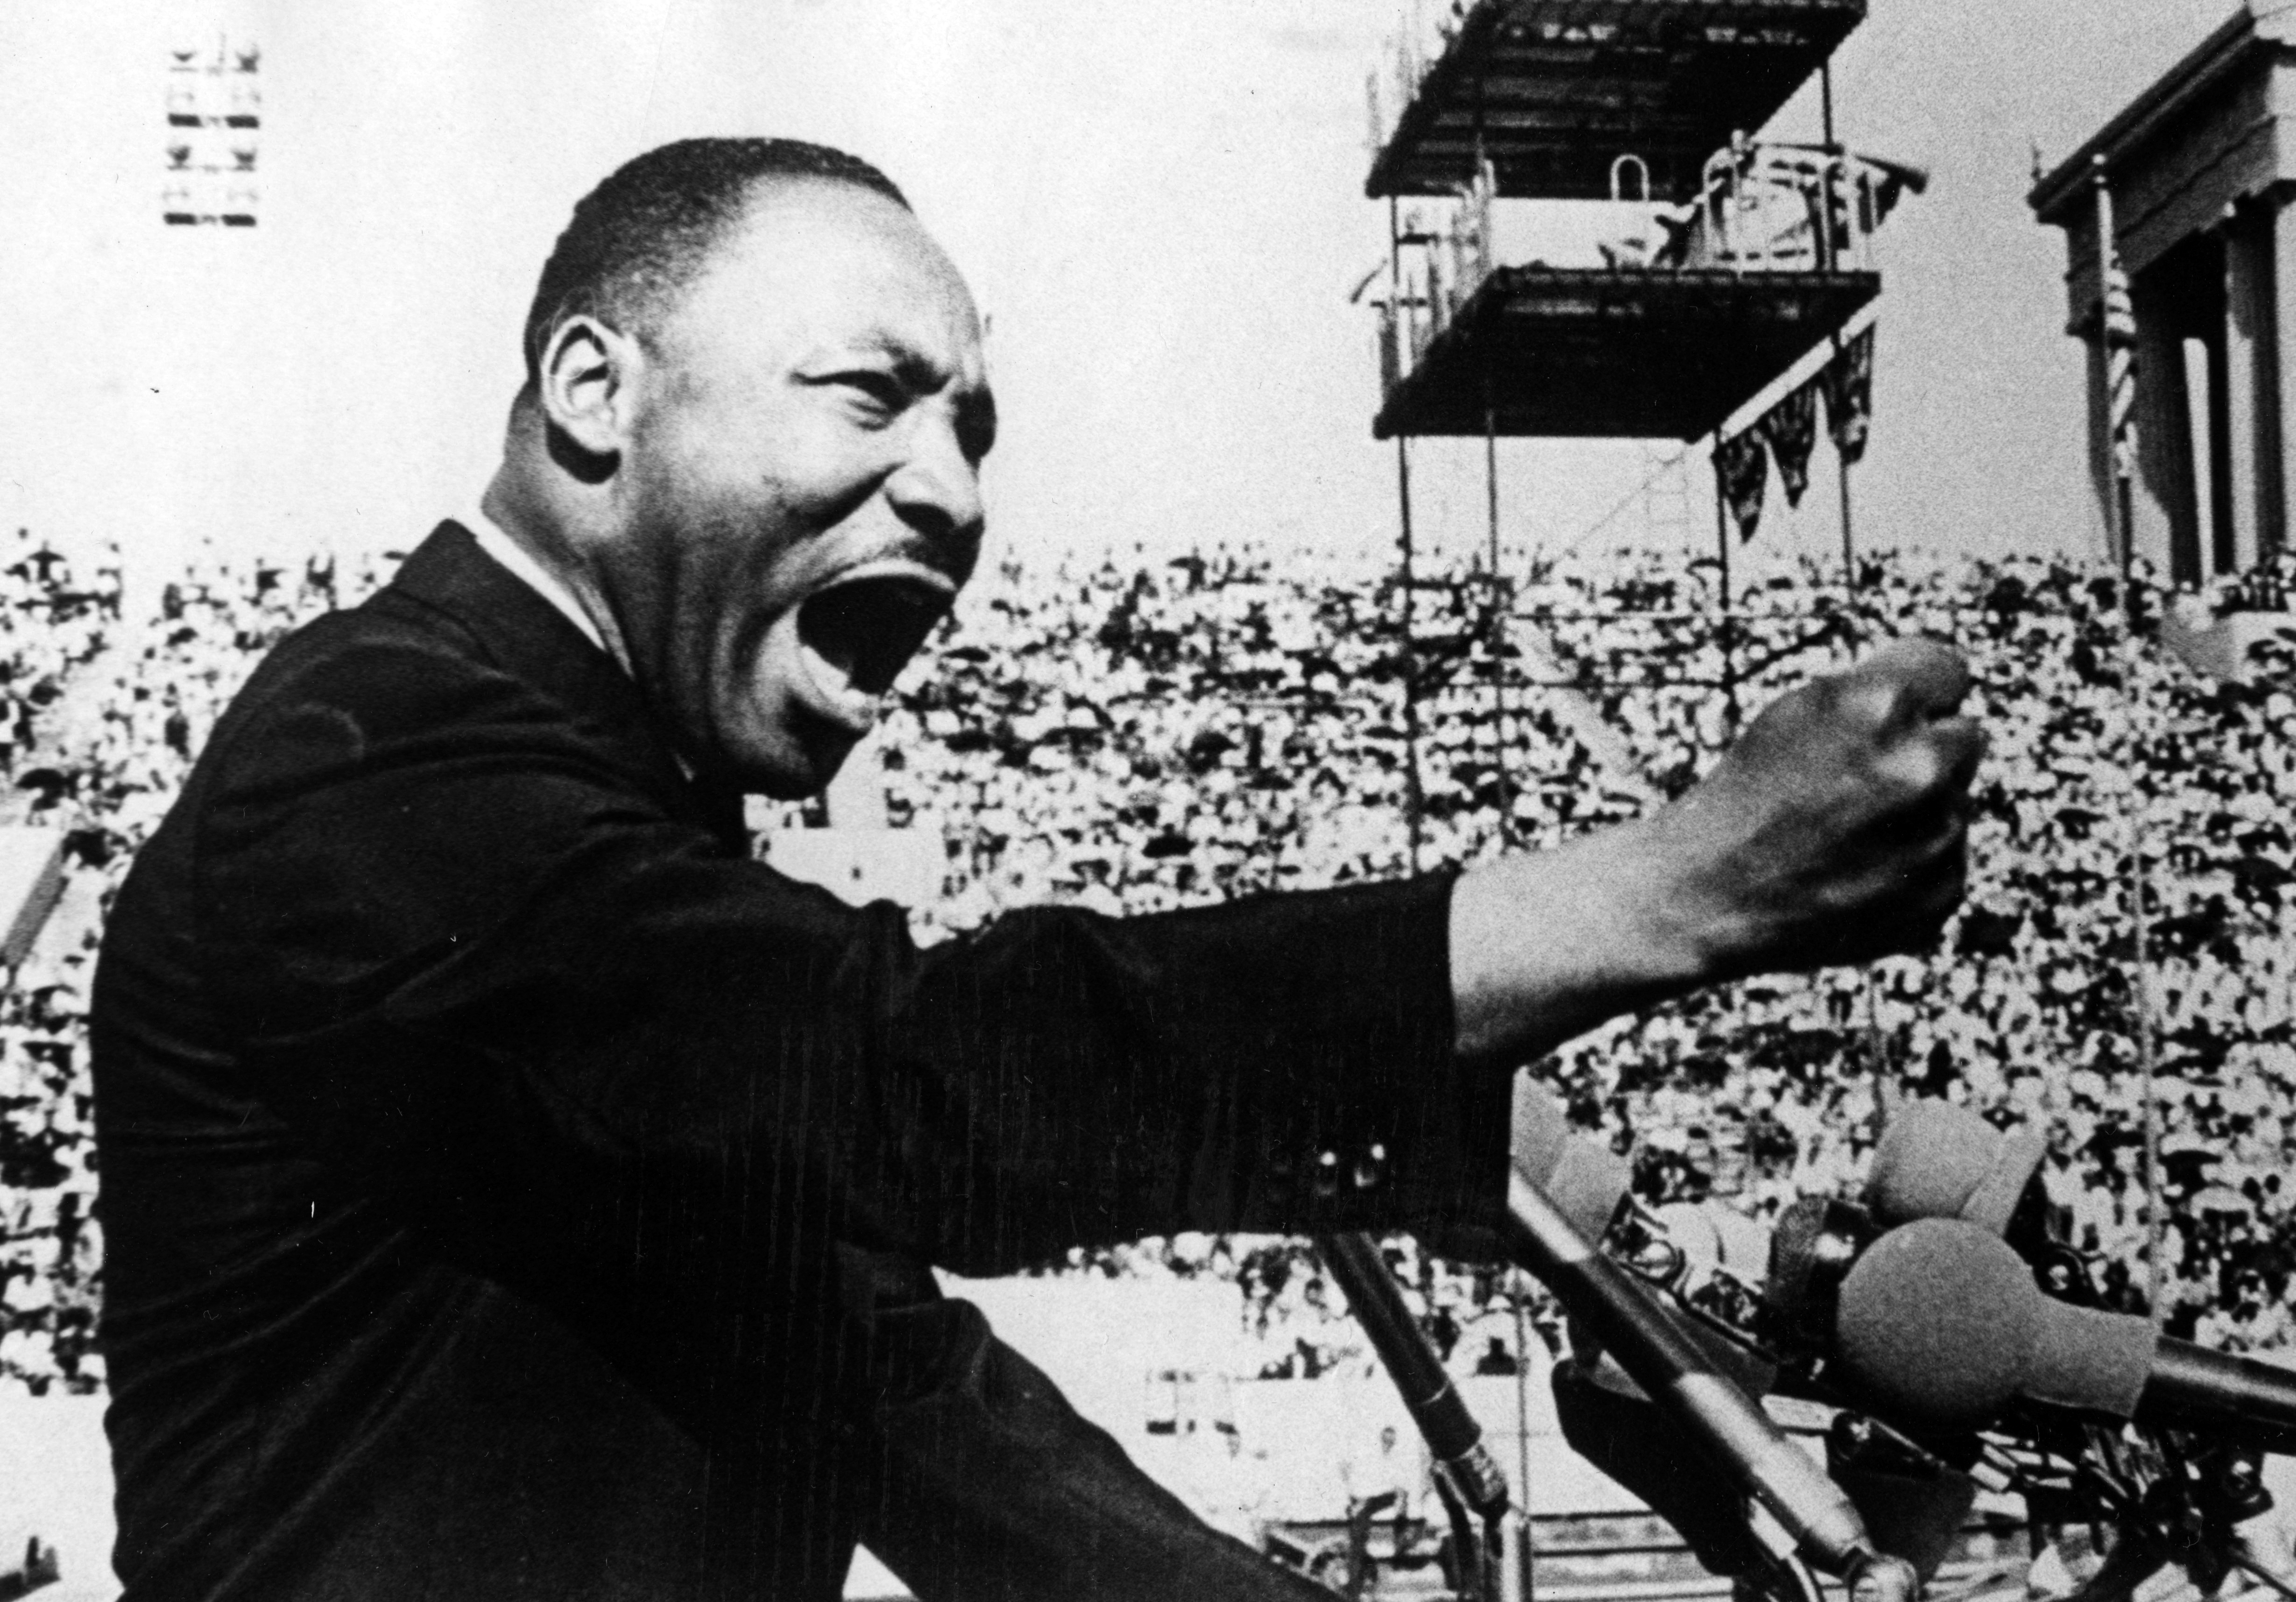 Dr. Martin Luther King Jr. gestures emphatically during a speech at a Chicago Freedom Movement rally in Soldier Field, Chicago, Illinois, July 10, 1966.